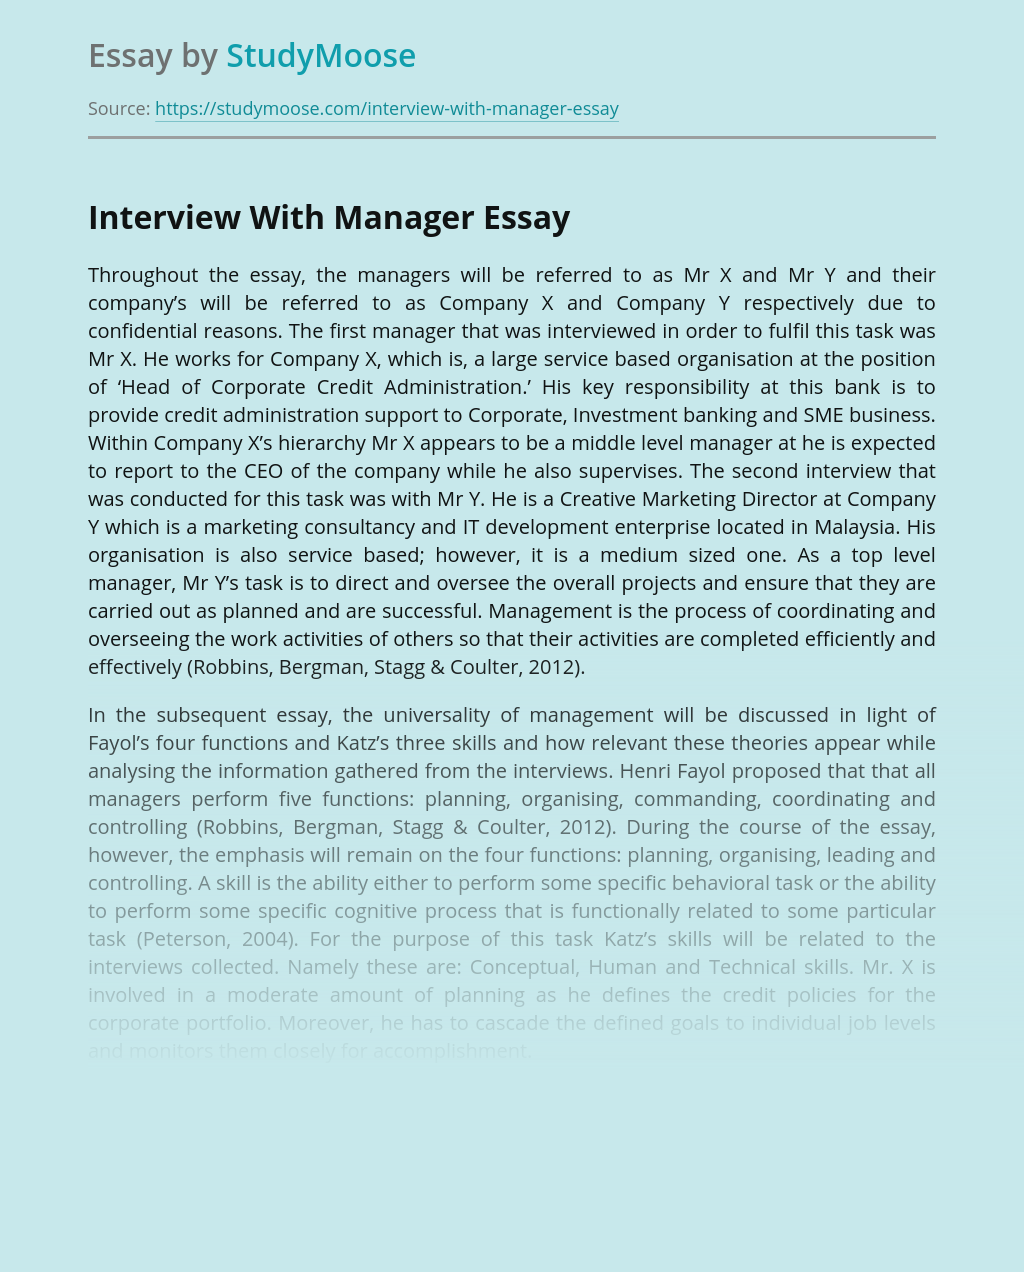 Interview With Manager